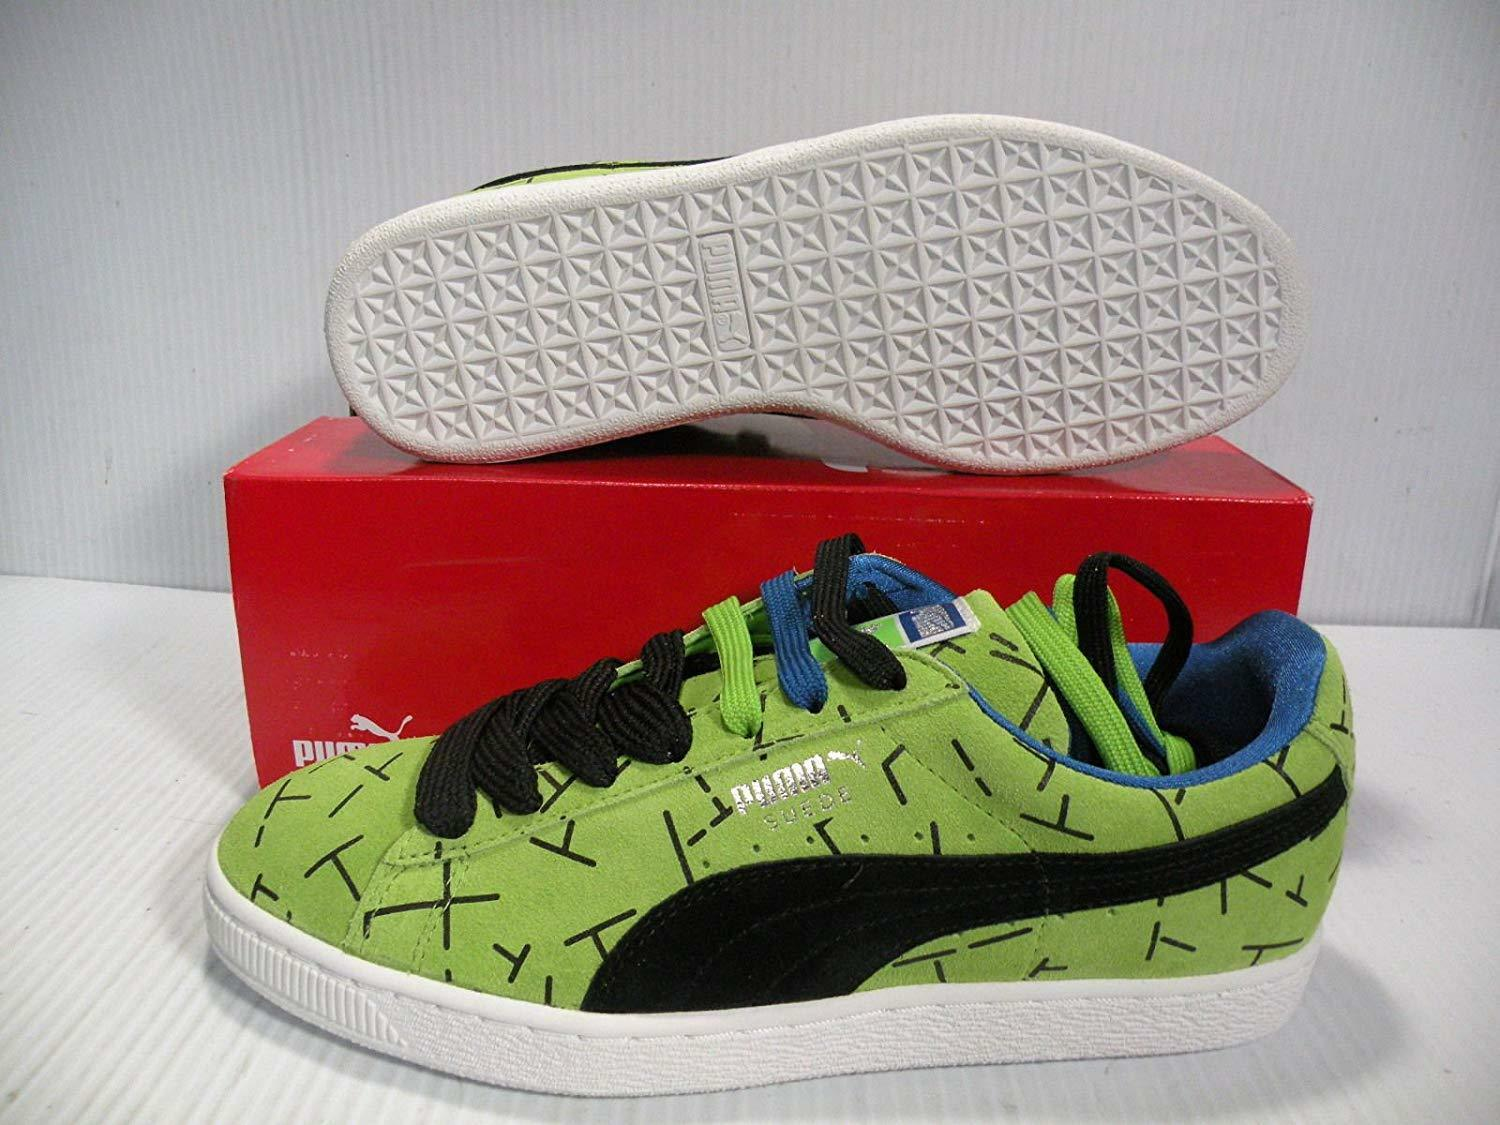 PUMA CLASSIC 1993 THE LIST SUEDE 355664-03 SNEAKERS Uomo SHOES LEAF 355664-03 SUEDE SIZE 11 NEW 18ce5c